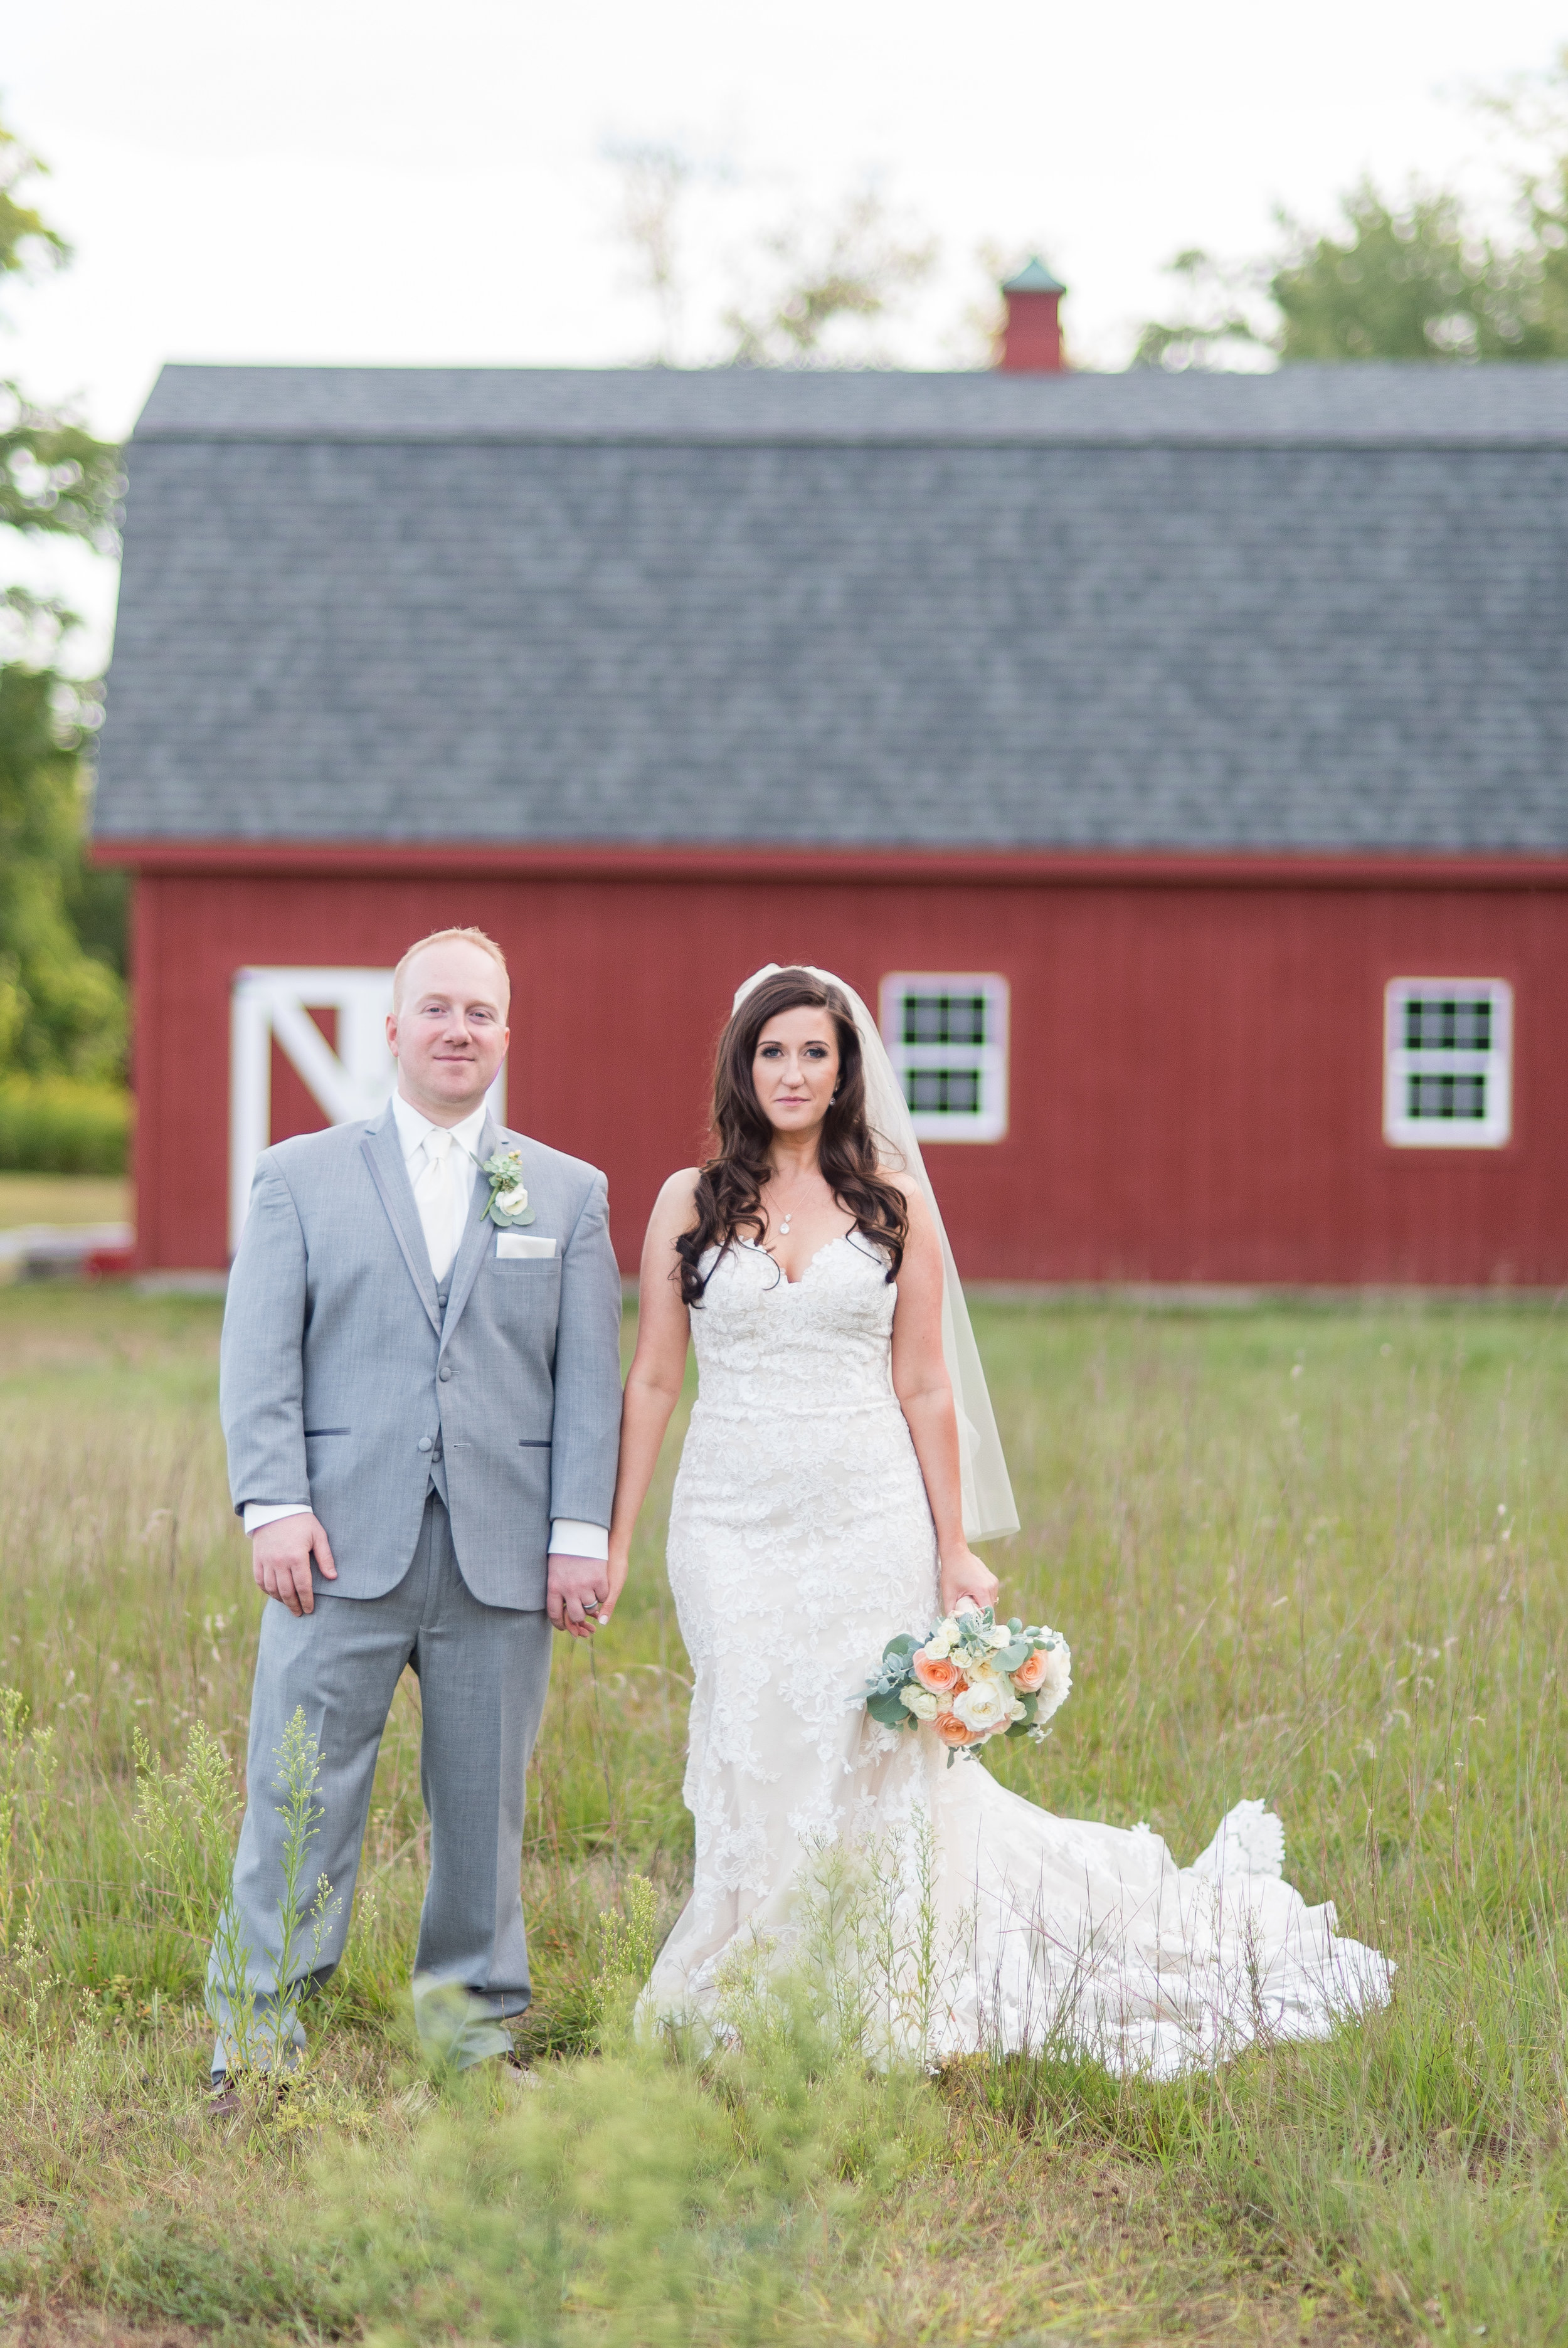 JILLIAN + MIKE - I cannot say enough positive things about Shanna and Mike. House of Lubold shot both our engagement and wedding photos. Beyond their talent and expertise; they are an incredible couple to just be around! Both Shanna and Mike not only helped to manage the wedding chaos on the day of, they were supportive, encouraging, and helped all our guests to feel comfortable! Our families and friends had nothing but positive things to say surrounding their interactions with Shanna and Mike (trust me, it's a tough crowd to please). We felt completely confident in our photography team which eased our anxiety and left room for us to worry about other things! Shanna and Mike, absolutely PHENOMENAL both professionally and personally!!!